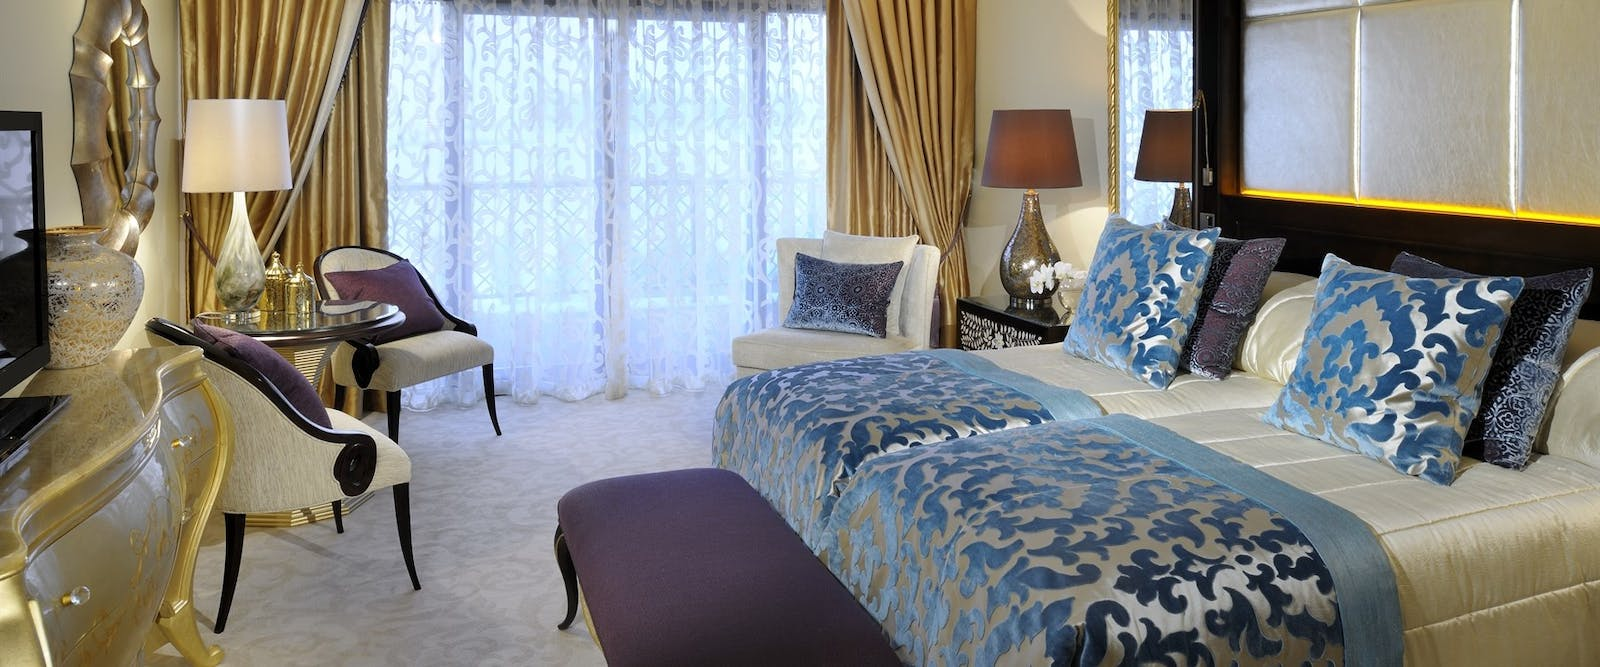 Royal Suite Guest Bedroom at One&Only Royal Mirage - The Palace, Dubai